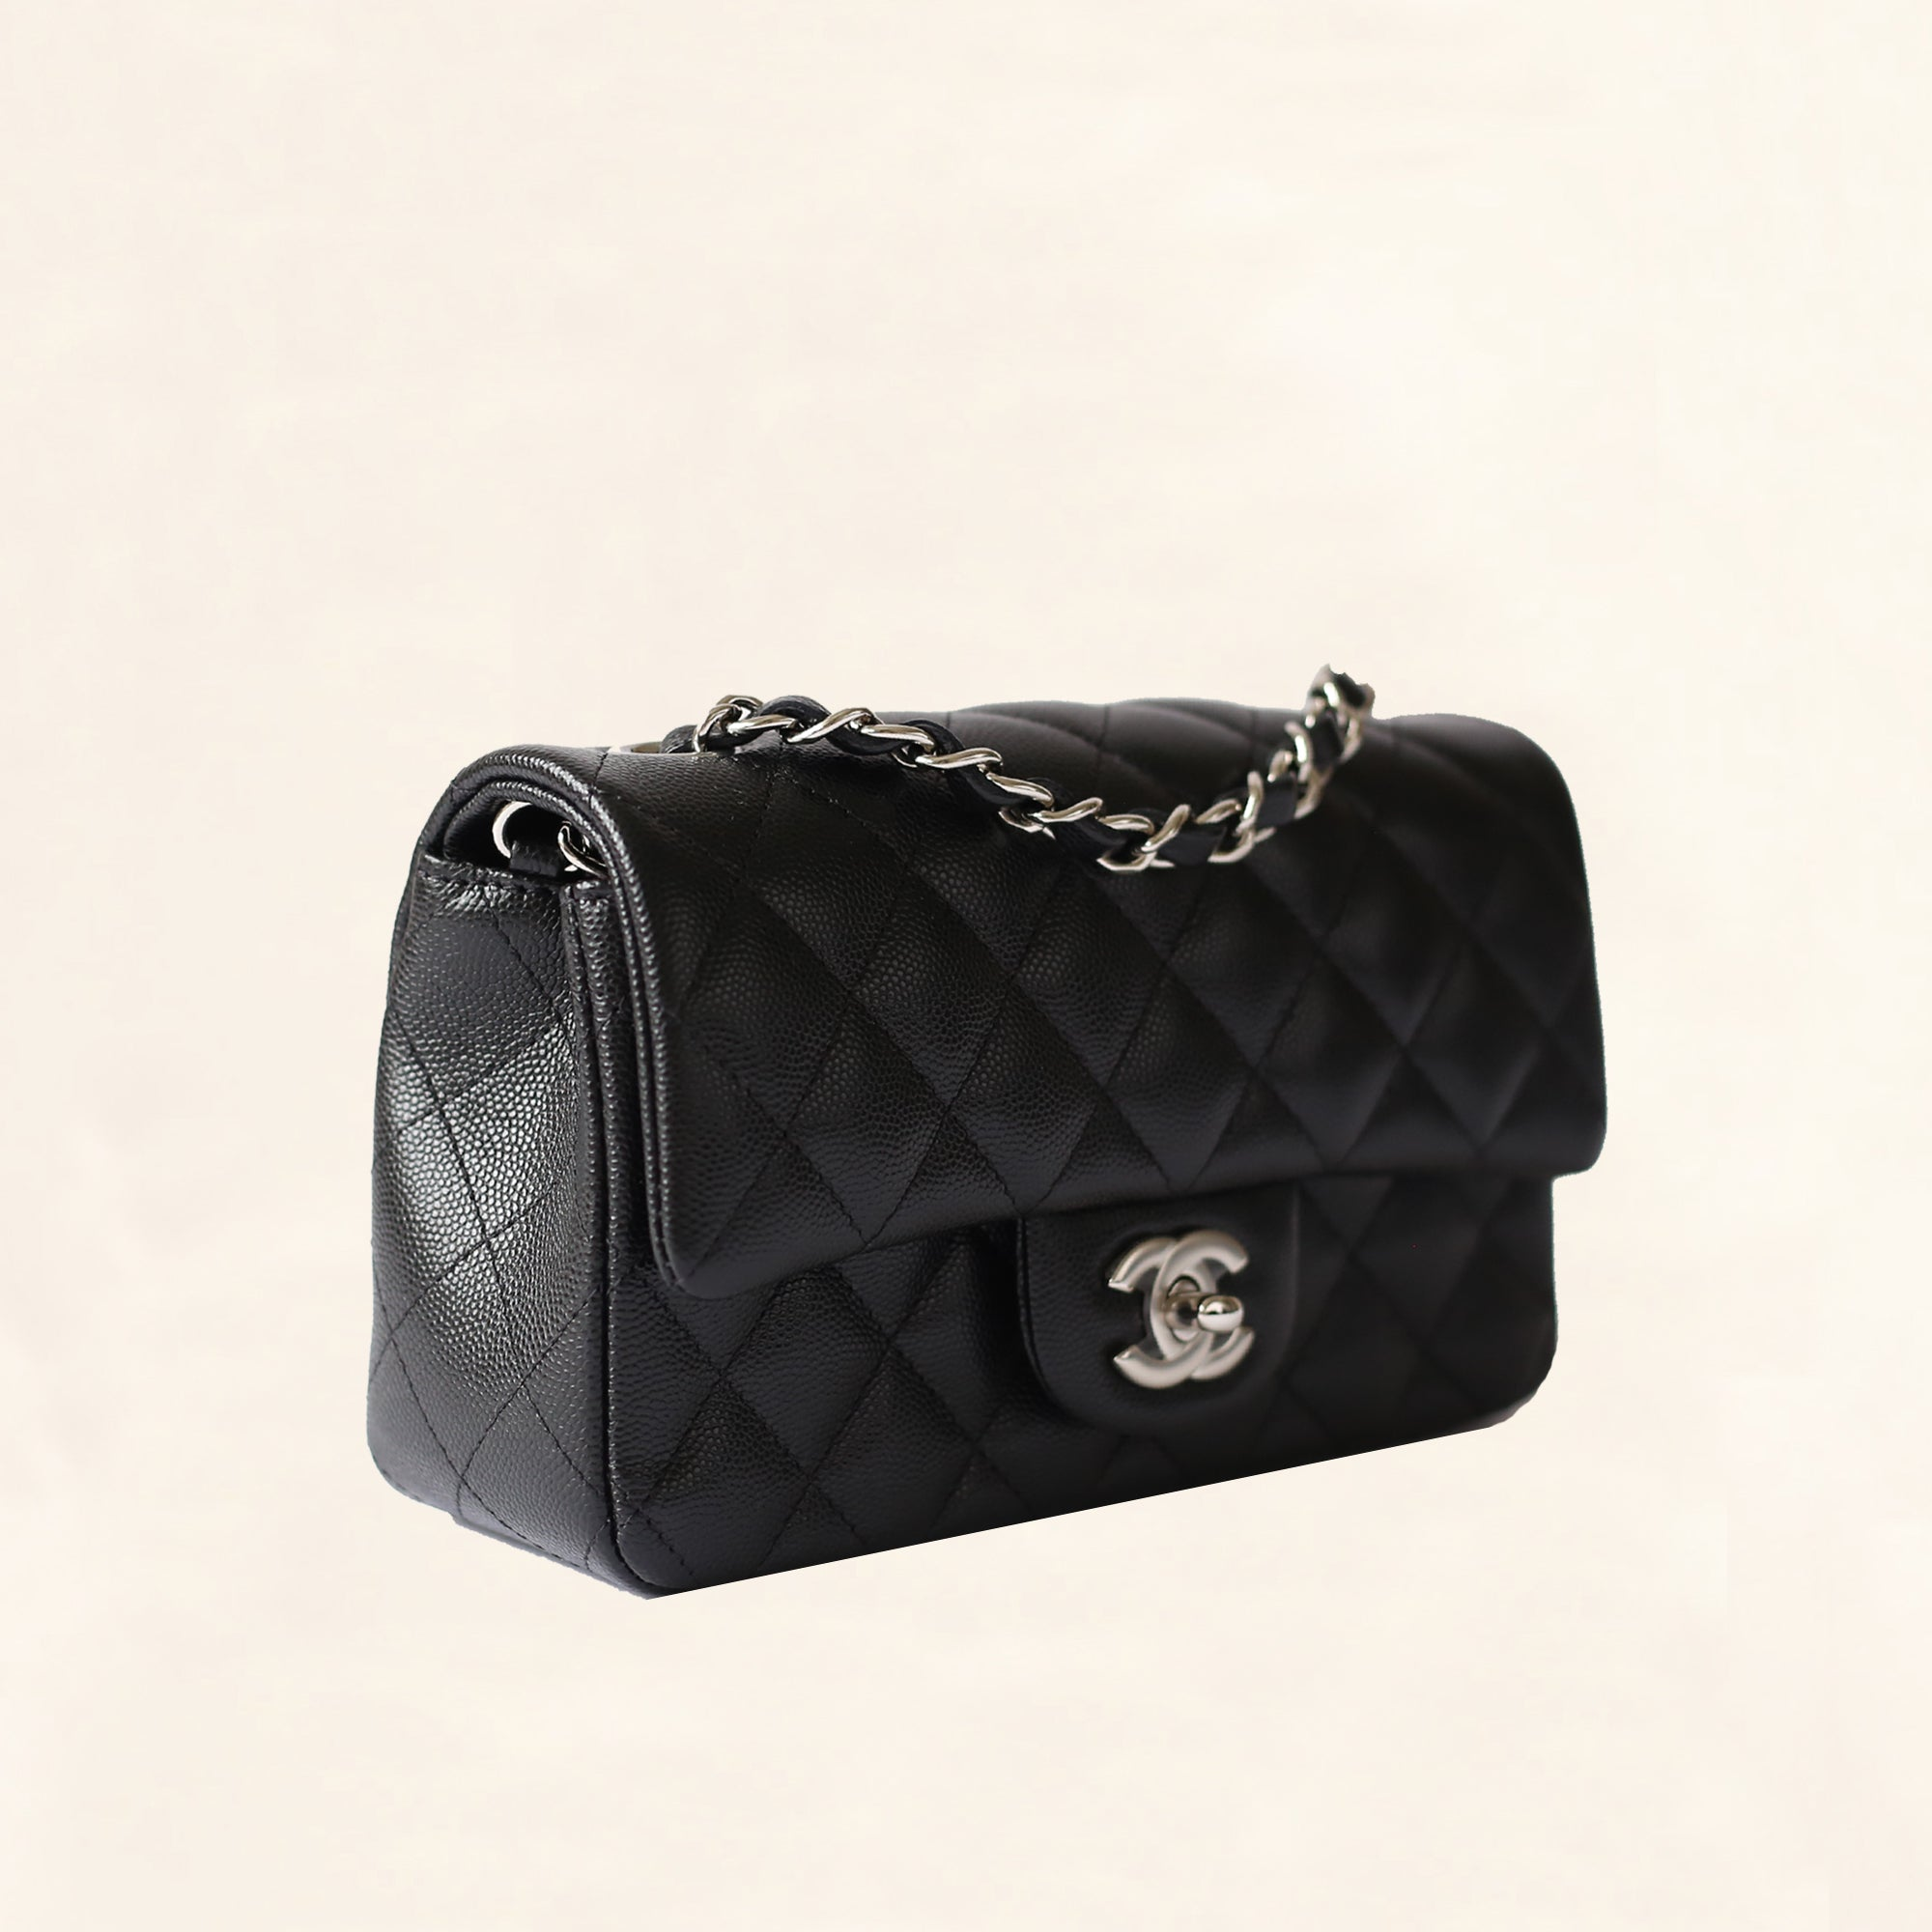 e3152a2057ac63 Chanel | Caviar Mini Rectangular Flap Bag | Black with Silver Hardware -  The-Collectory